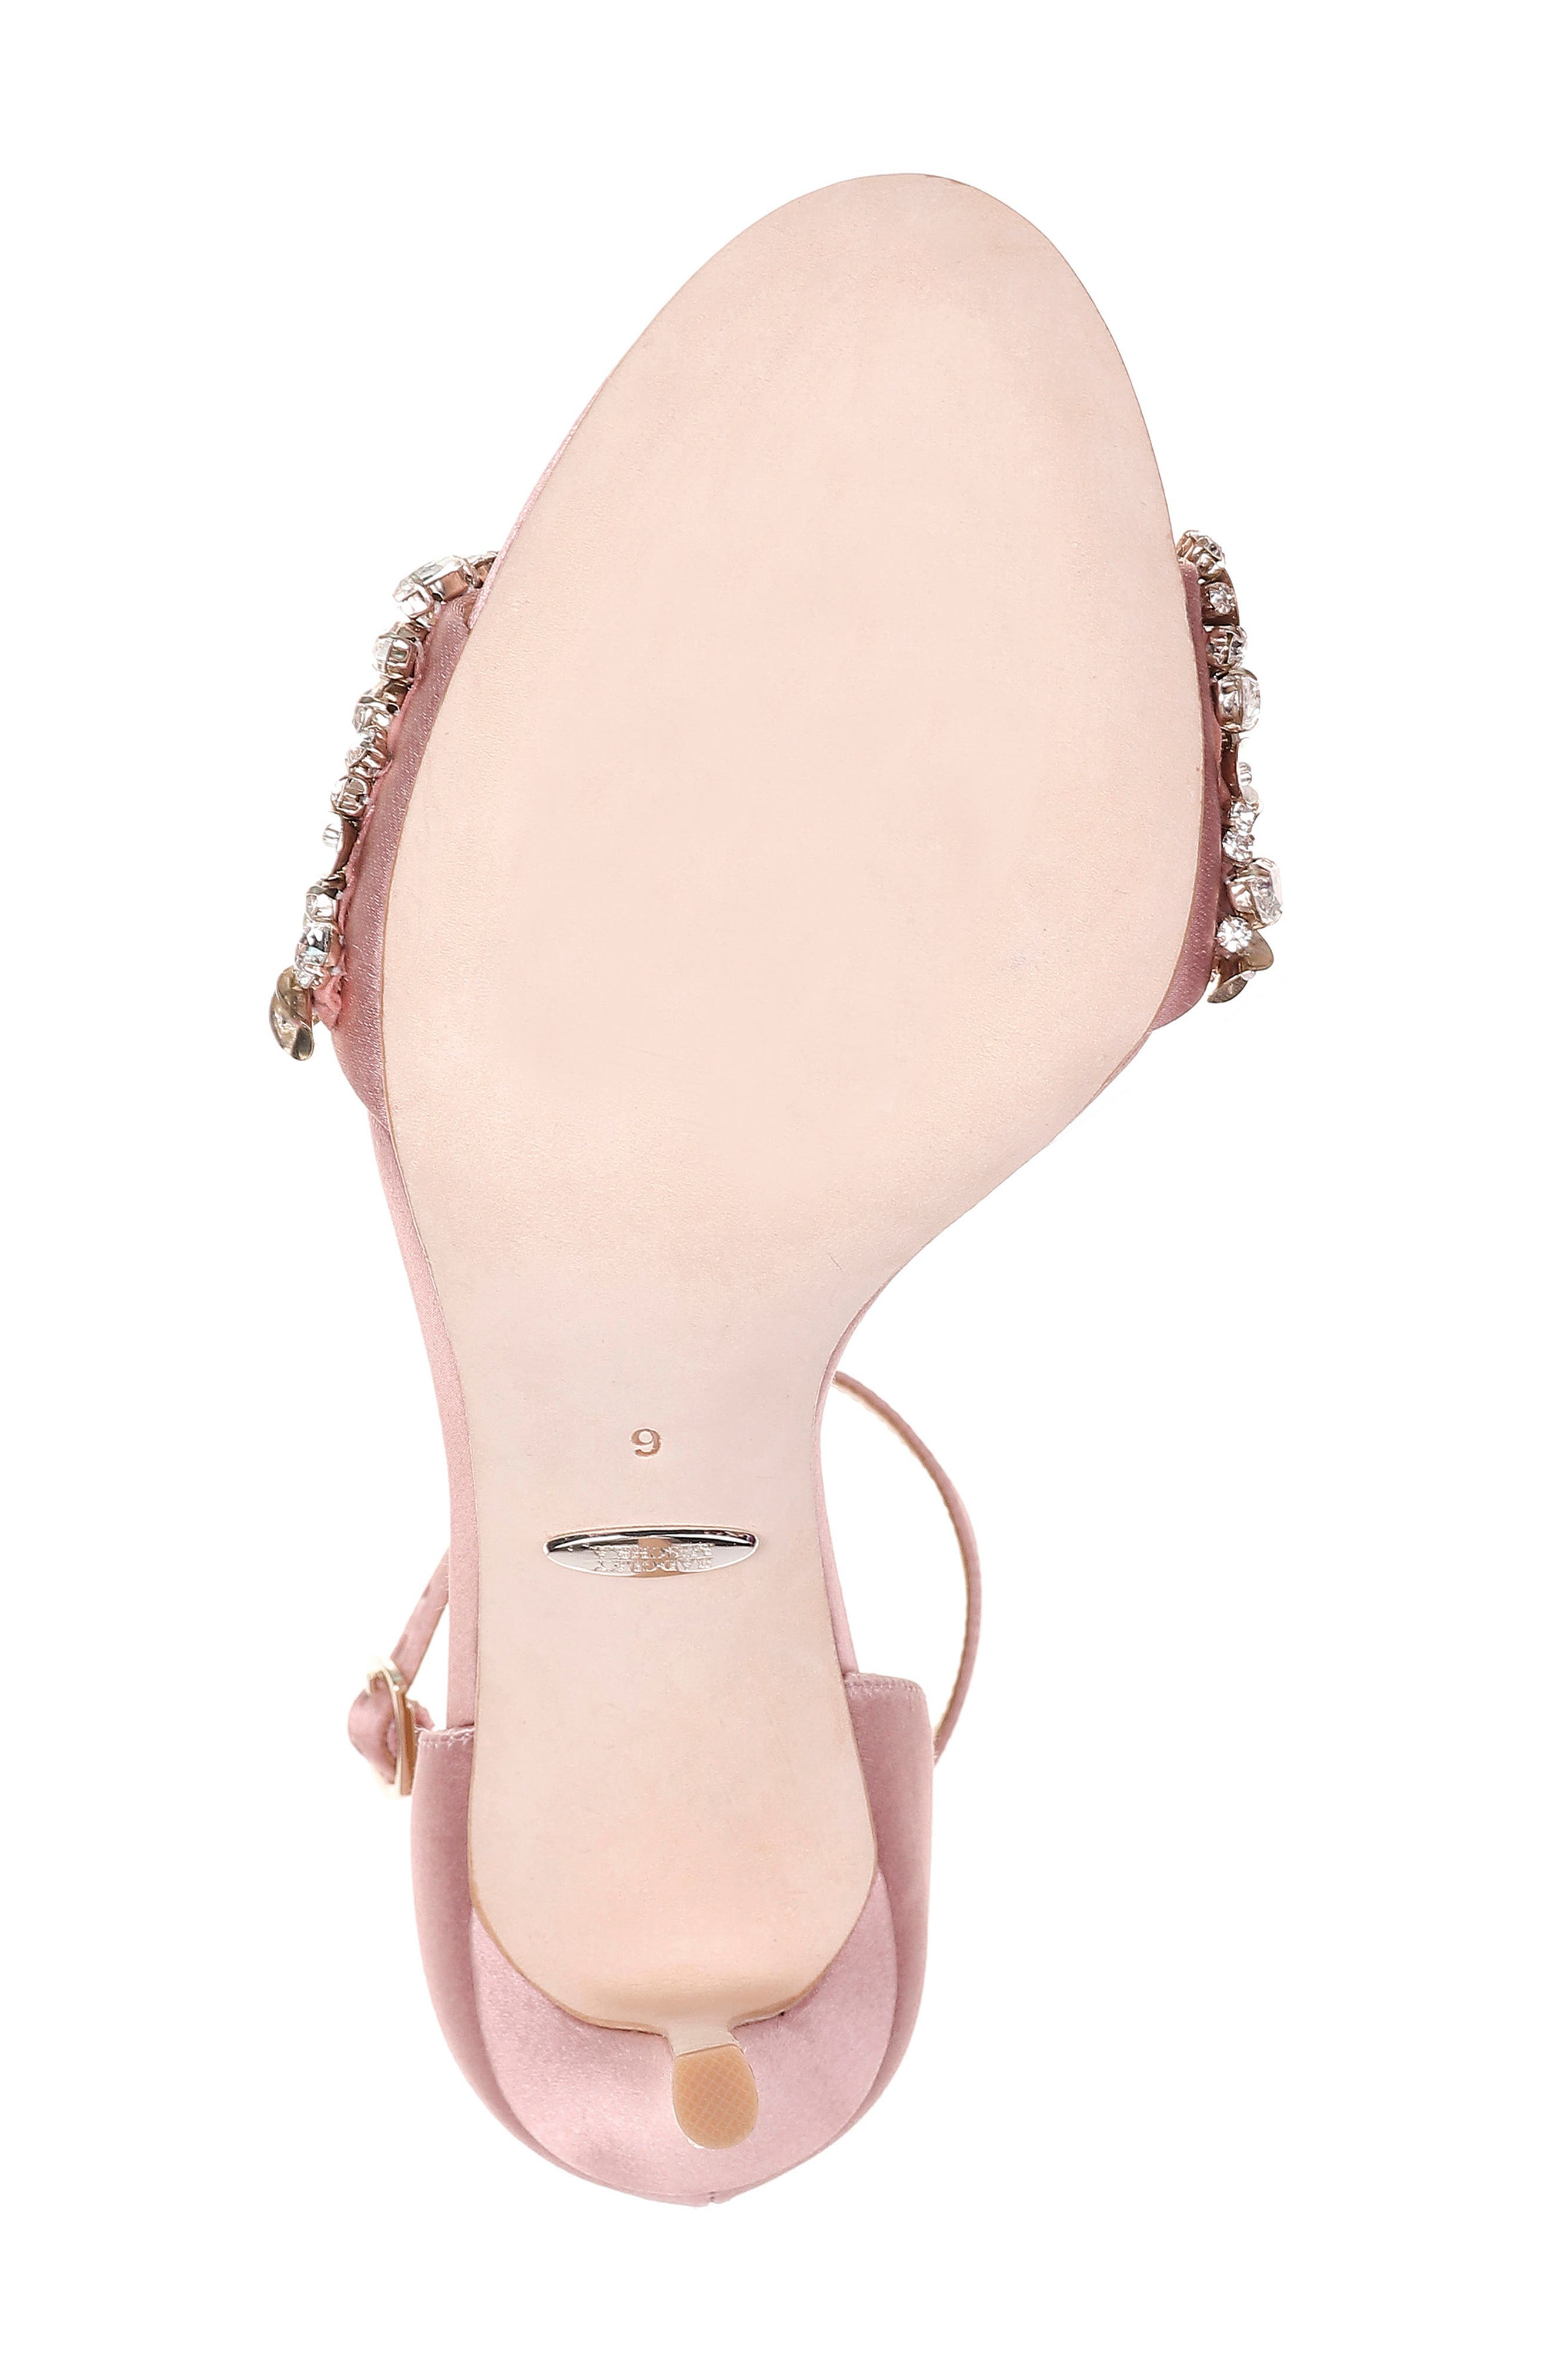 BADGLEY MISCHKA COLLECTION, Badgley Mischka Crystal Embellished Sandal, Alternate thumbnail 6, color, PINK ROSE SATIN